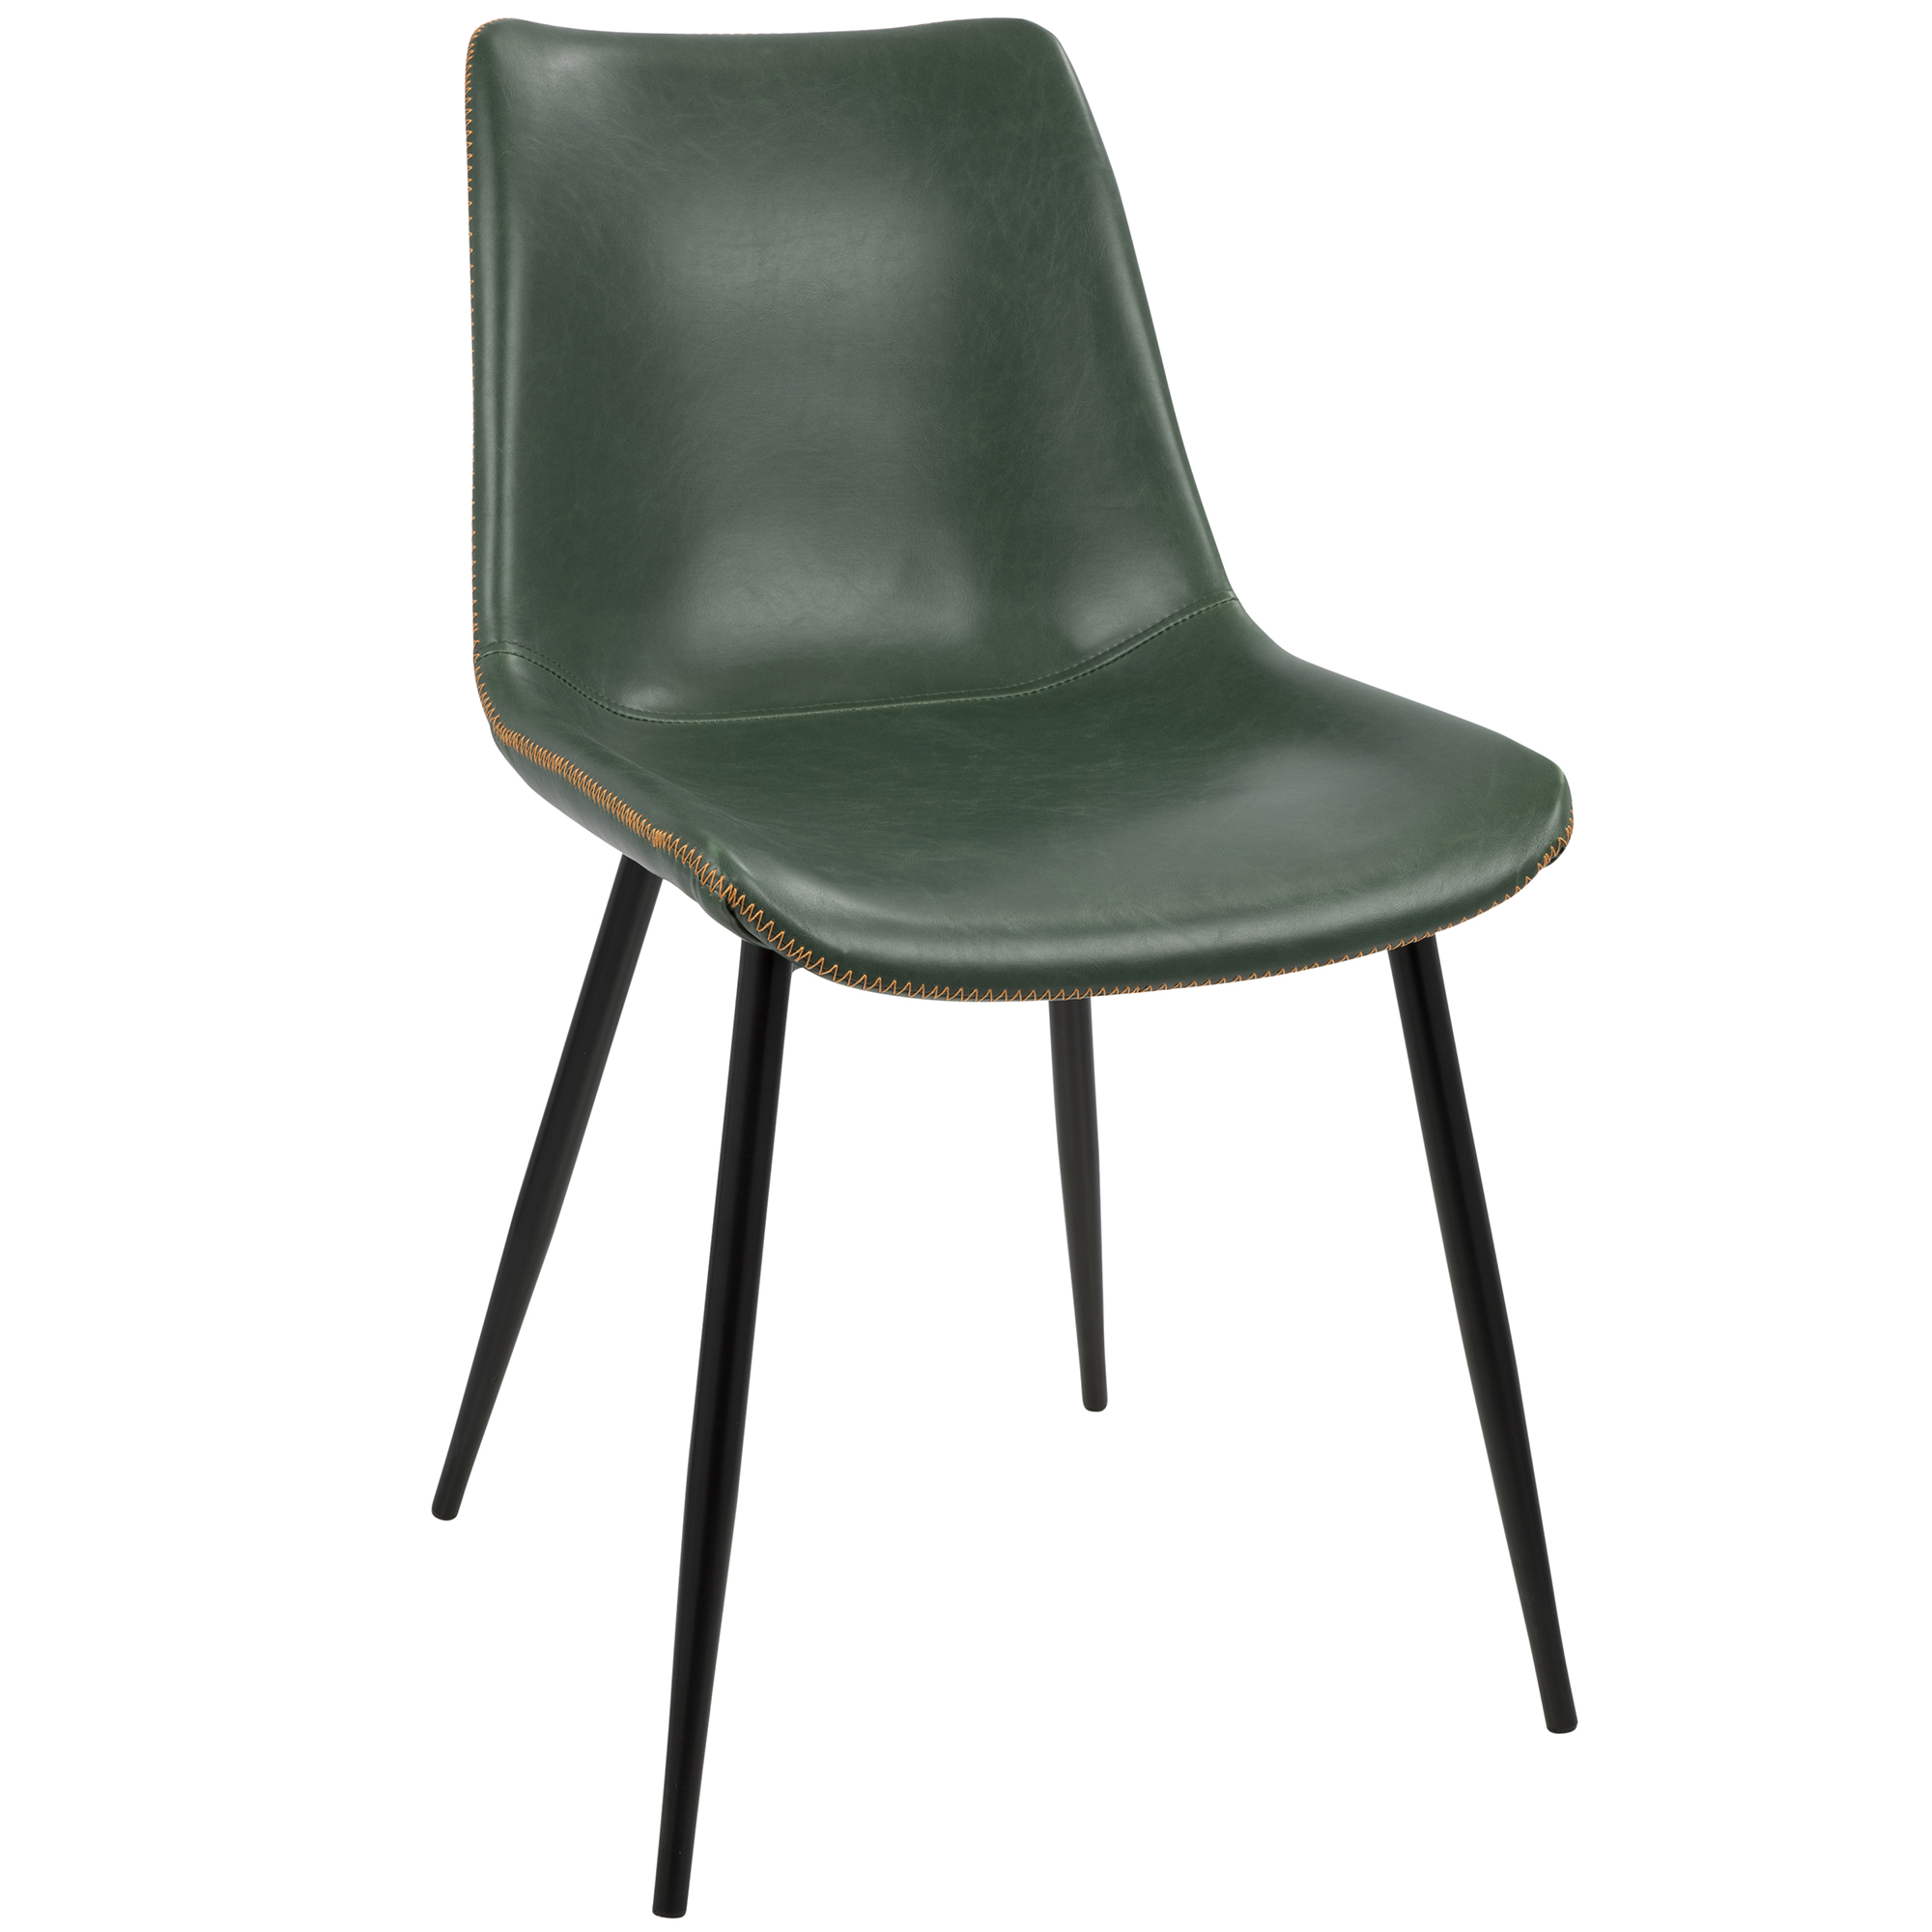 Durango Contemporary Dining Chair In Black With Green Vintage Faux Leather By Lumisource Set Of 2 Walmart Com Walmart Com